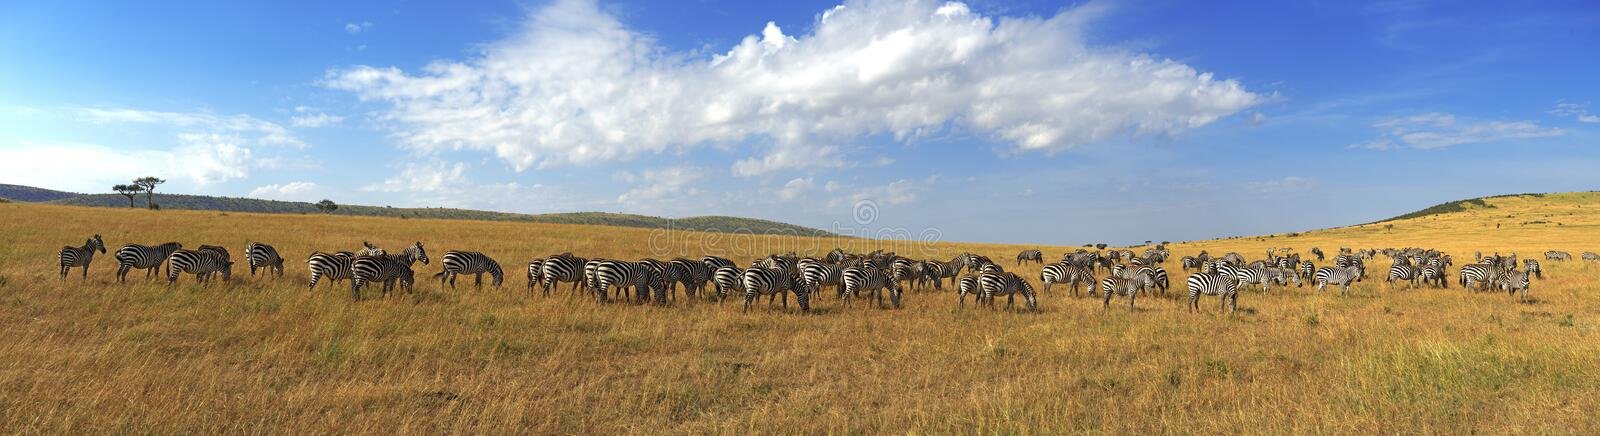 Zebras in a row walking in the savannah in Africa royalty free stock photo